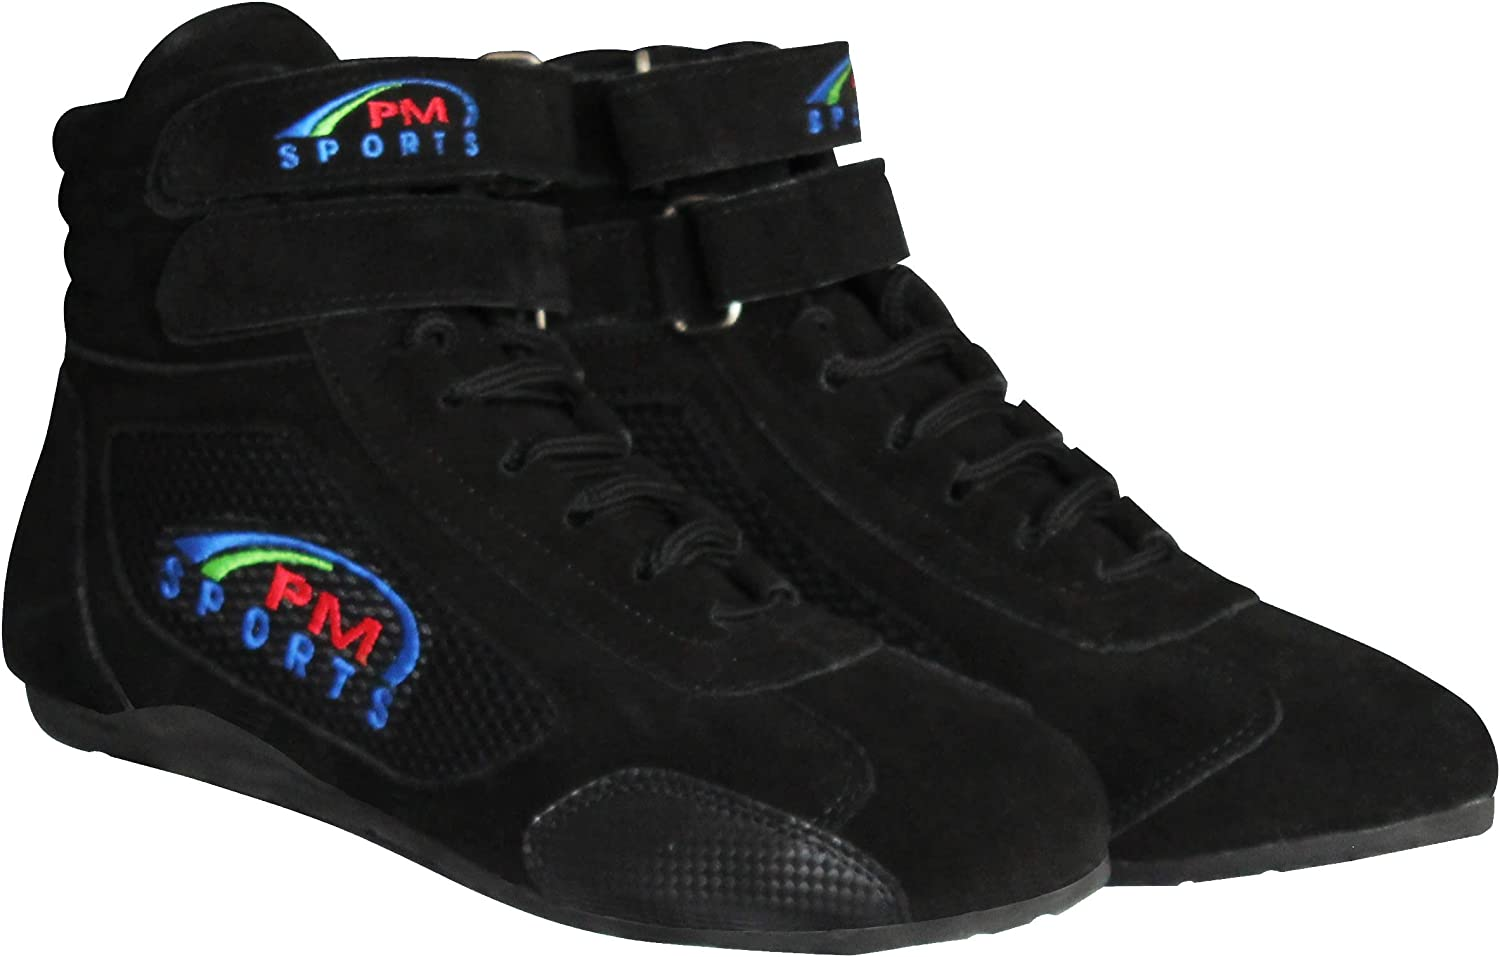 PM Sports Red Adult Karting Boots Race Rally Track Boots with Suede /& Mesh Racewear